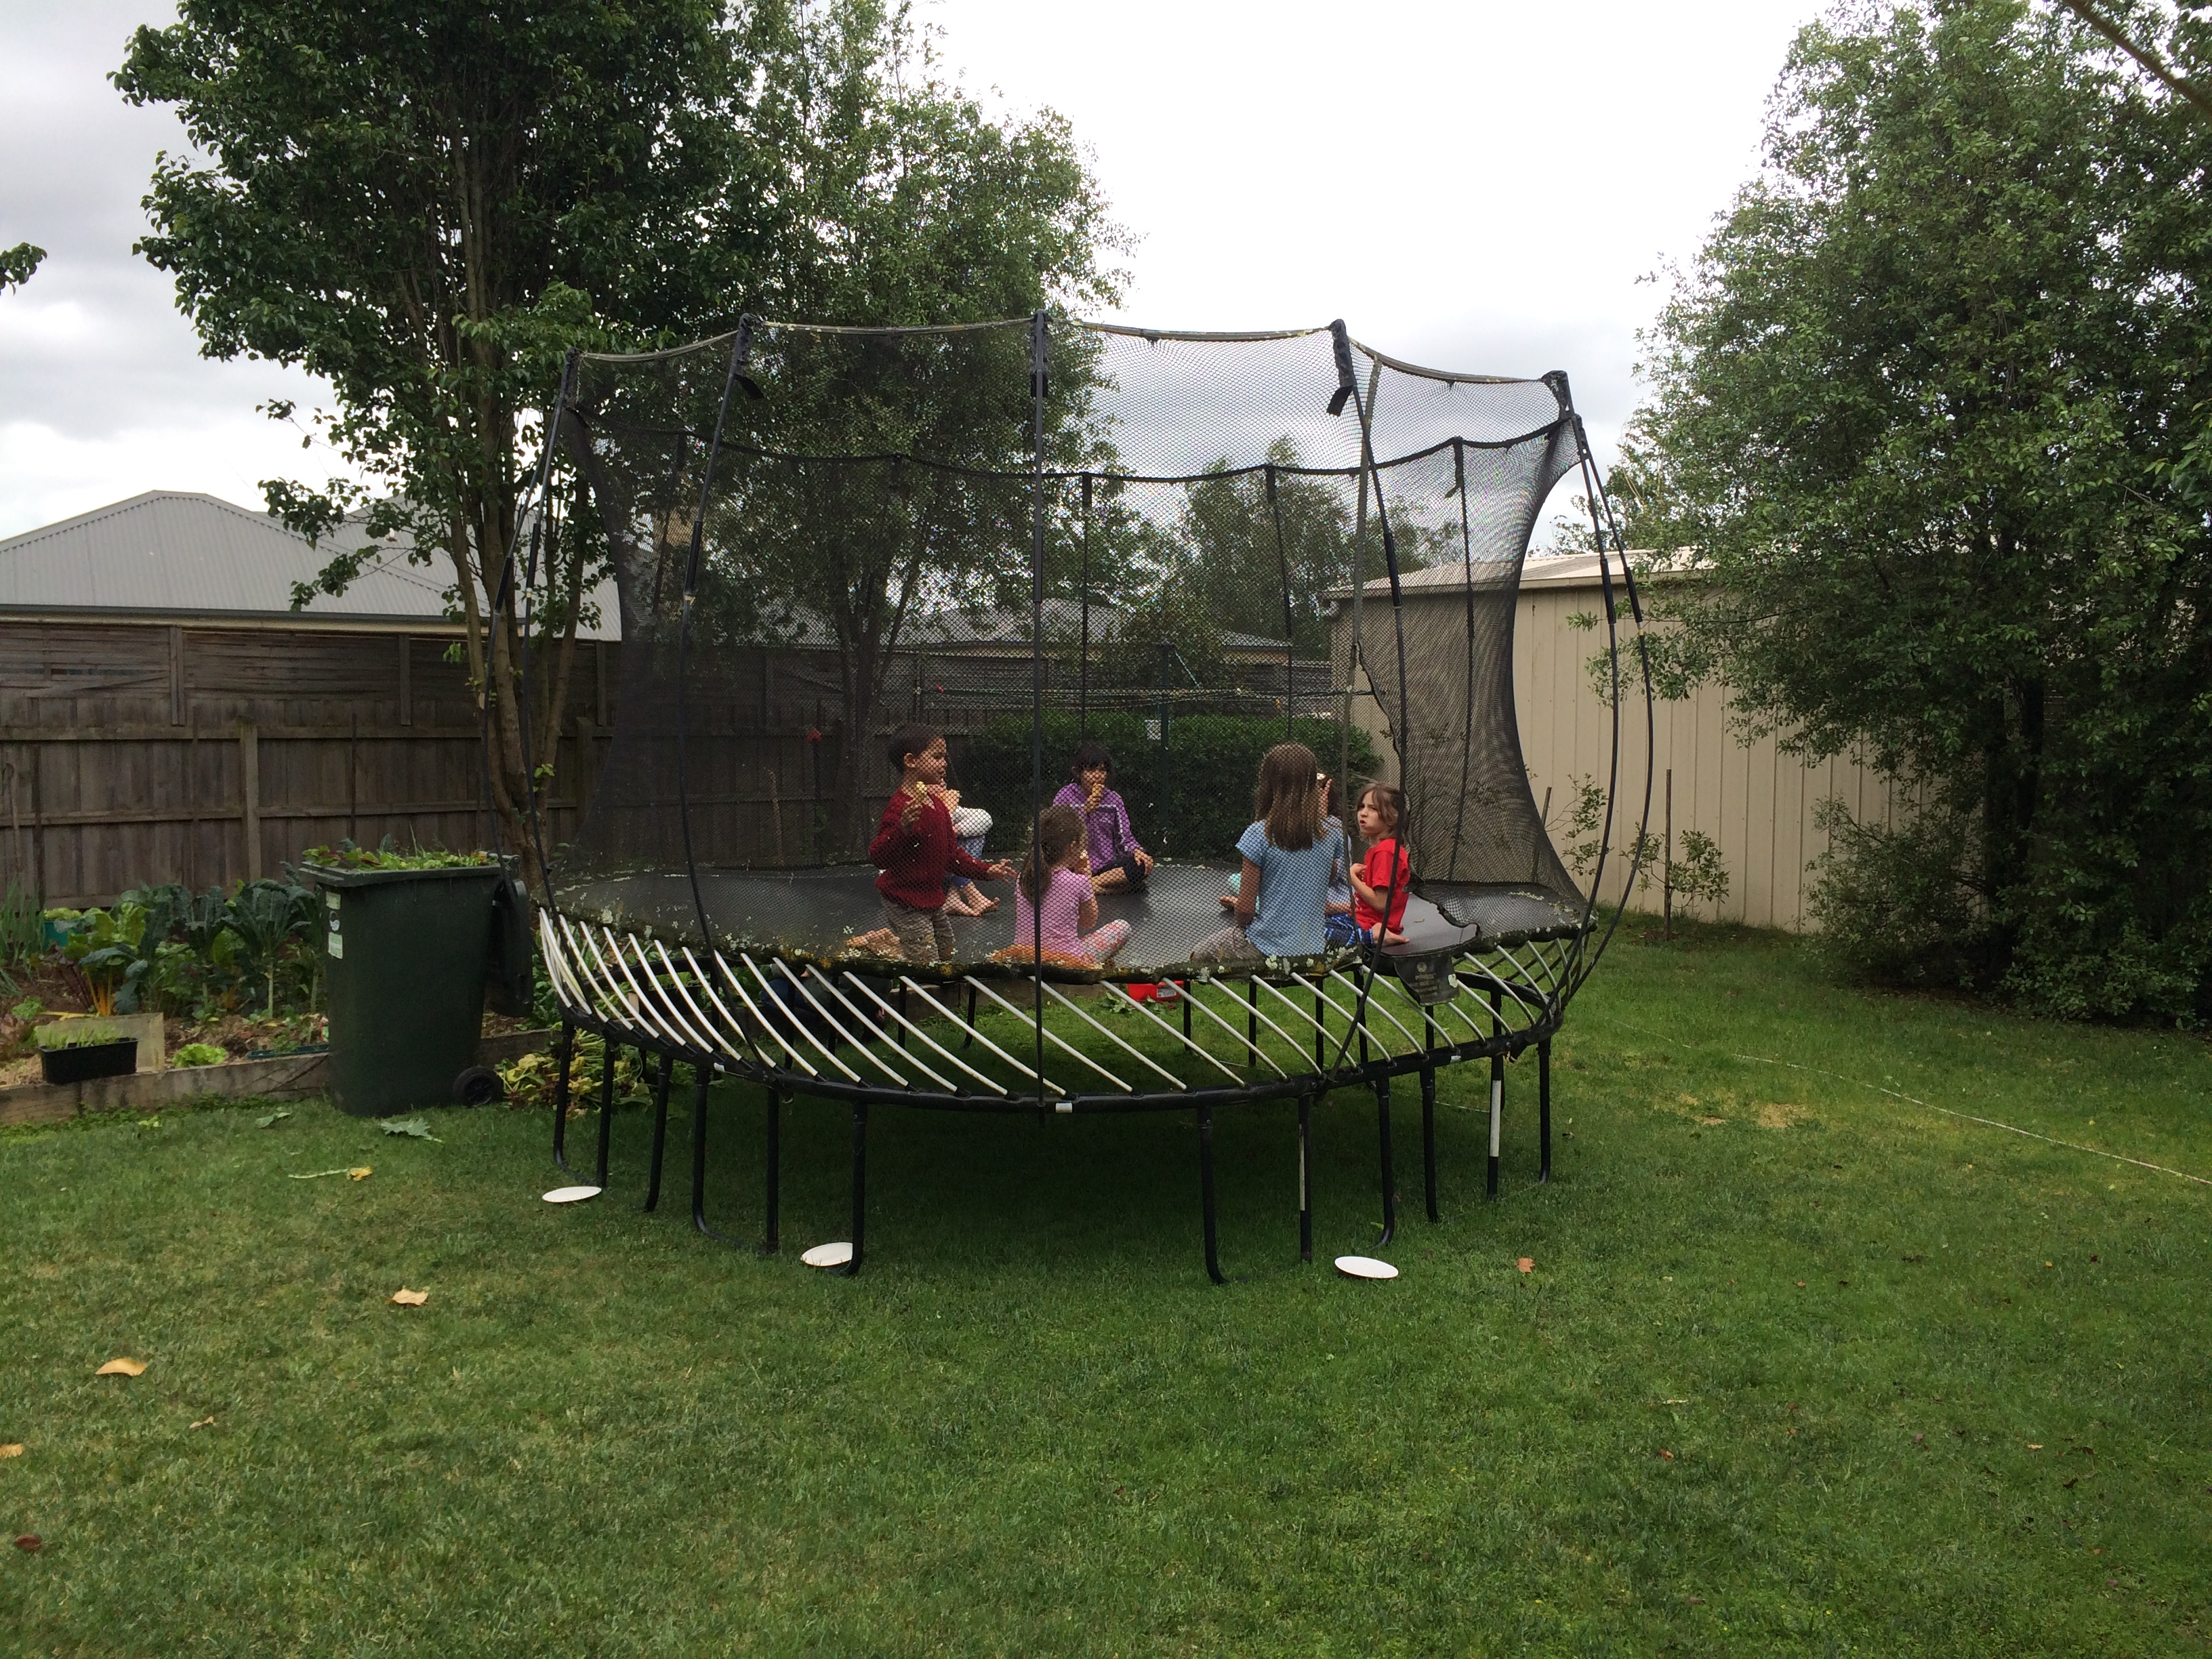 The trampoline makes a great table - Thai style!